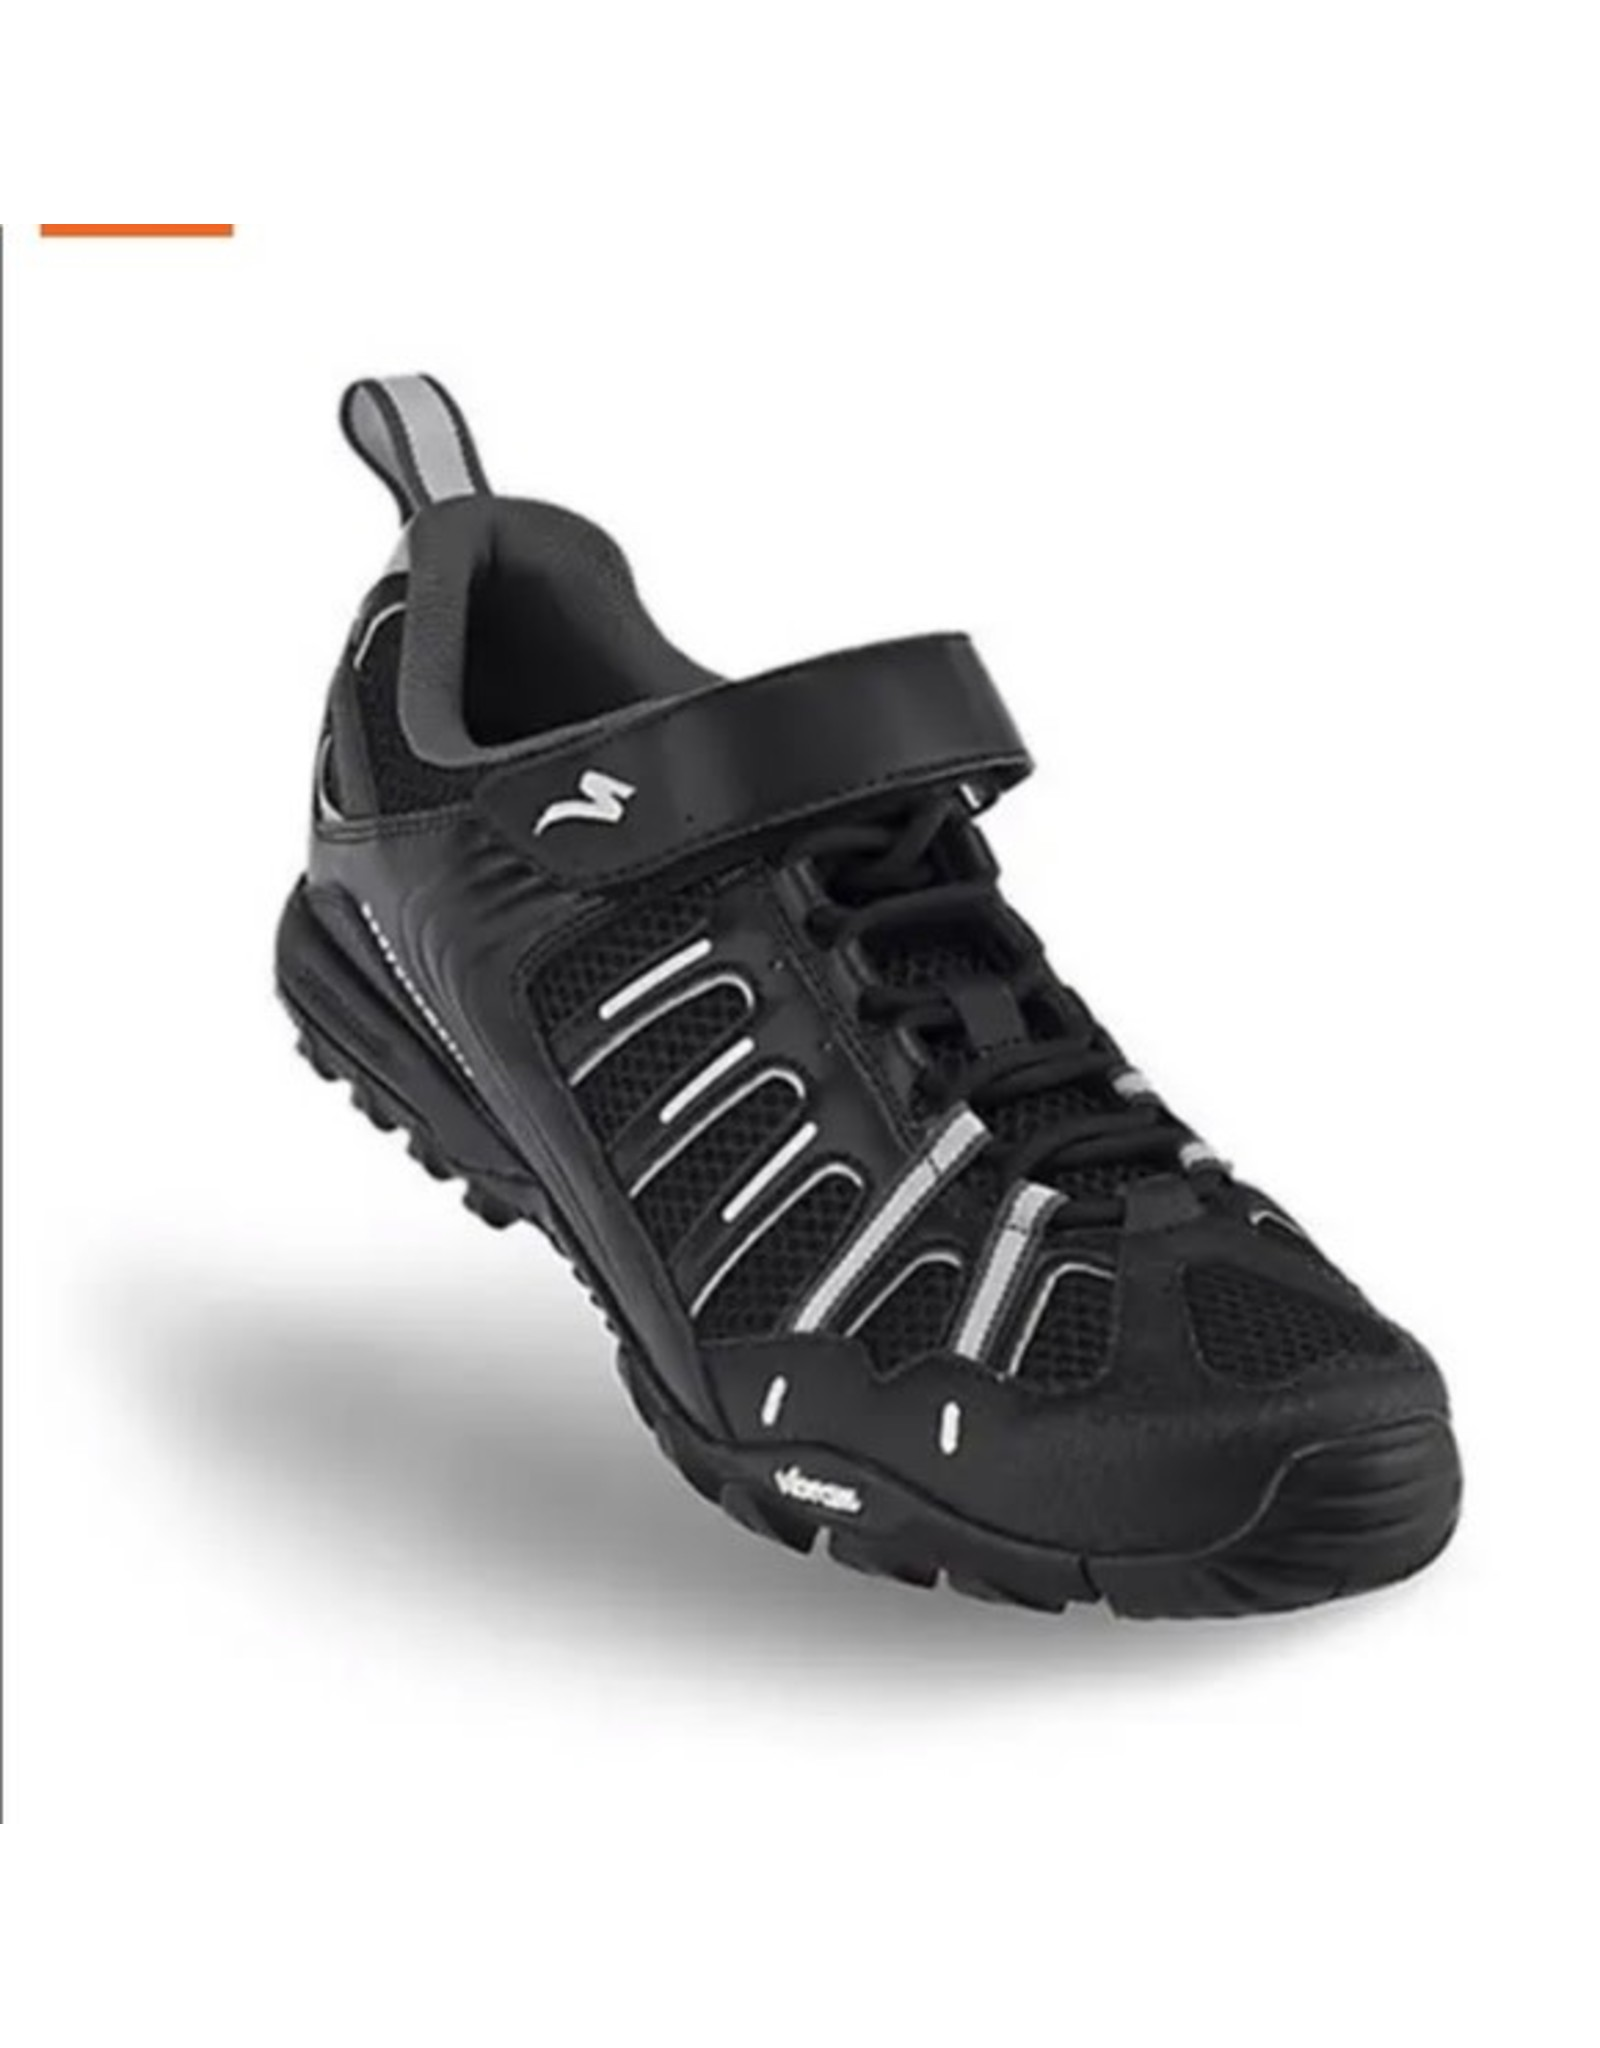 Specialized Shoe Spec Tahoe Sport  Blk 45